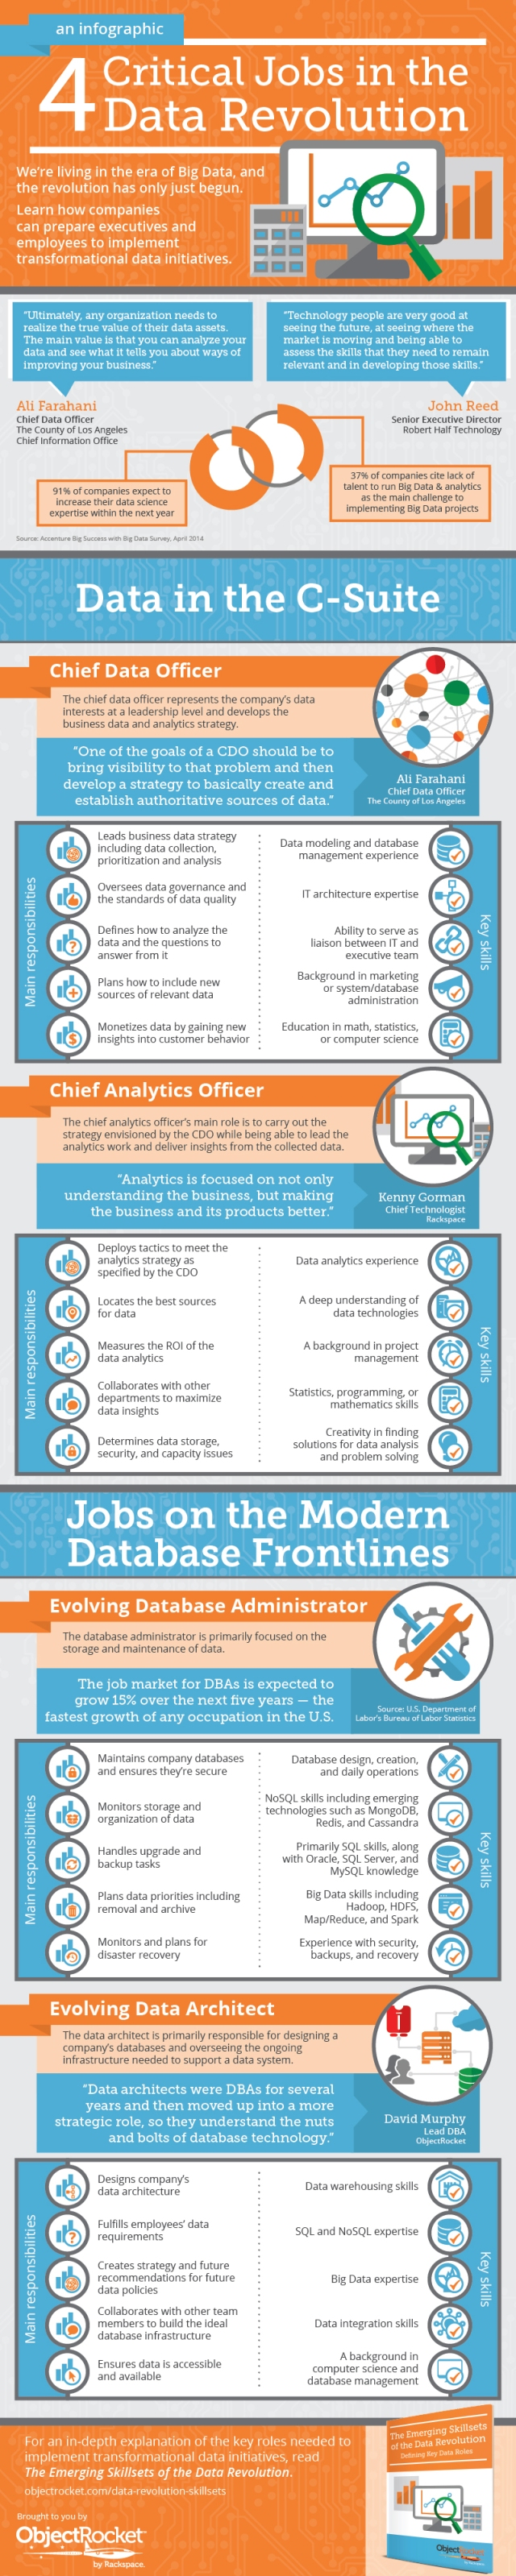 Infographic - The Emerging Skillsets of the Data Revolution